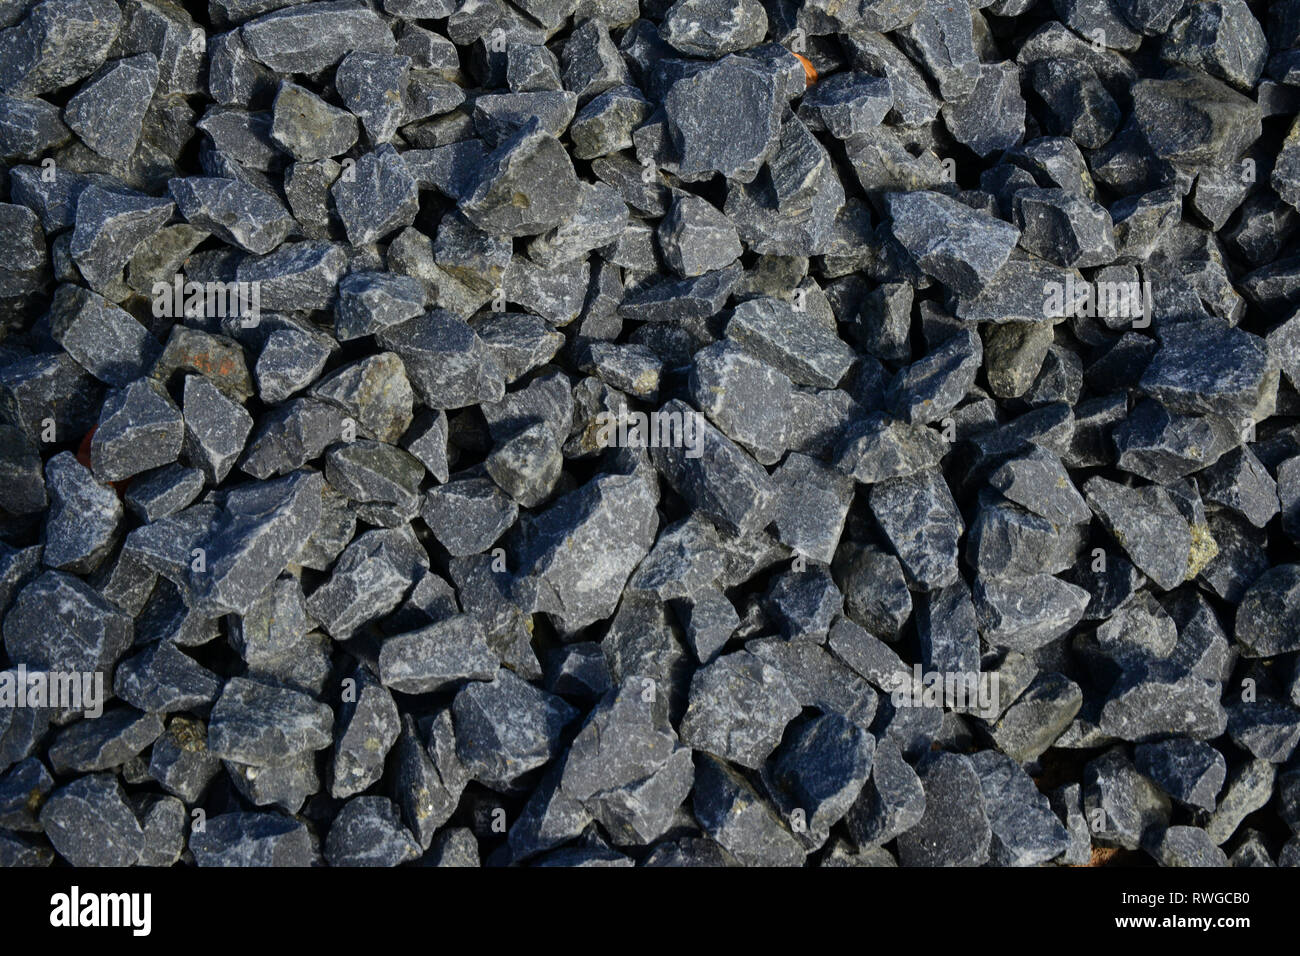 The basalt pit Bauersberg. Rhoen, Bavaria, Germany. Cracked basalt  used for construction - Stock Image